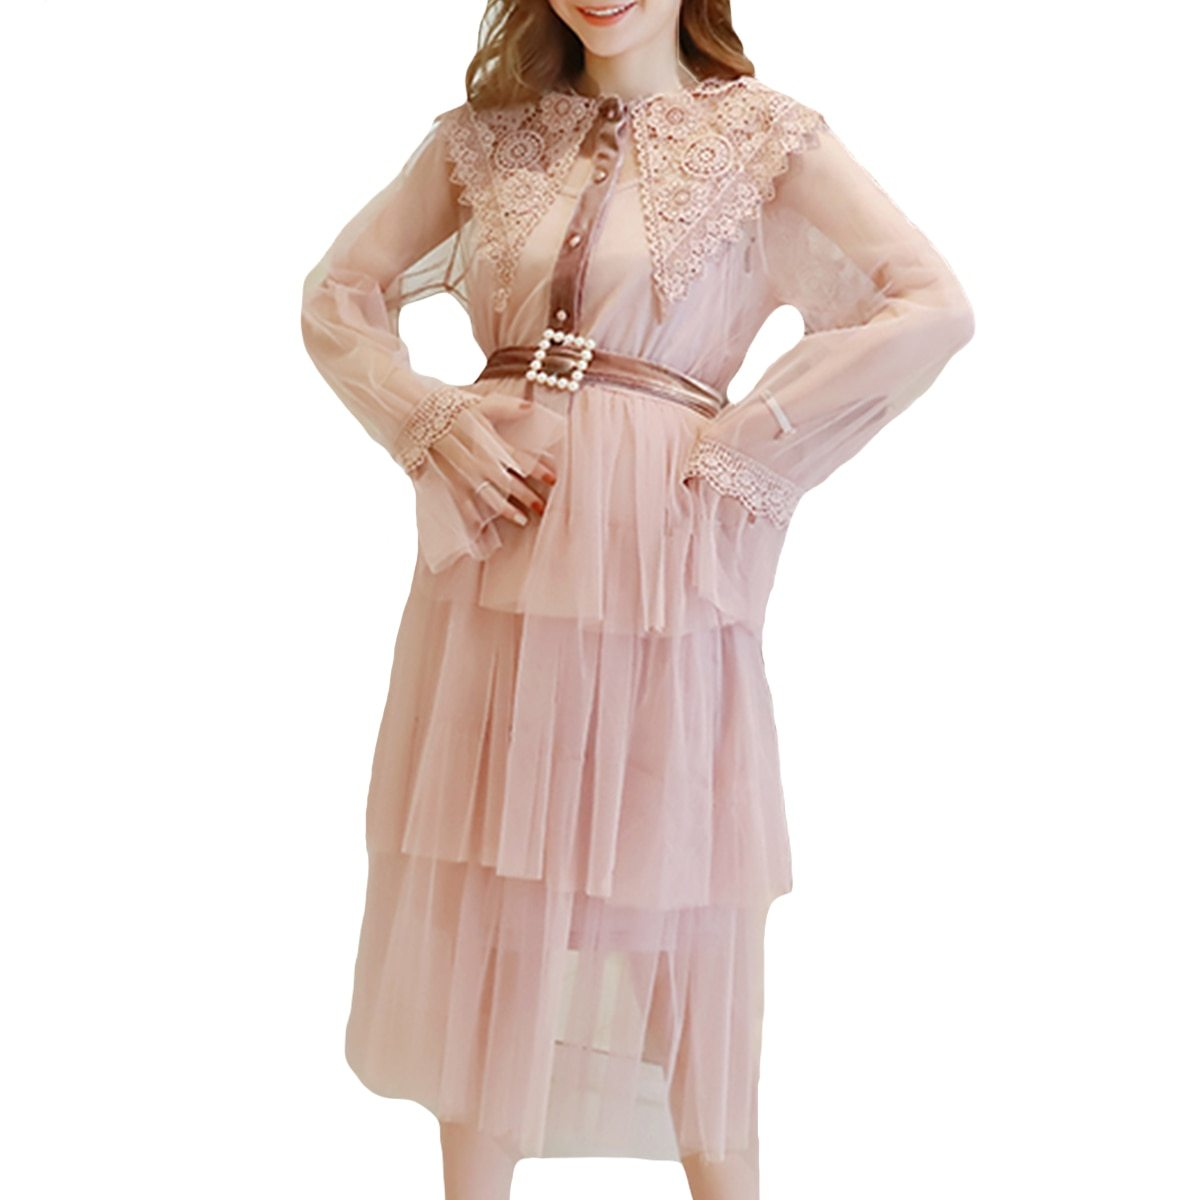 Maternity Dress Solid Color Lace Patchwork Waist Tied Dress